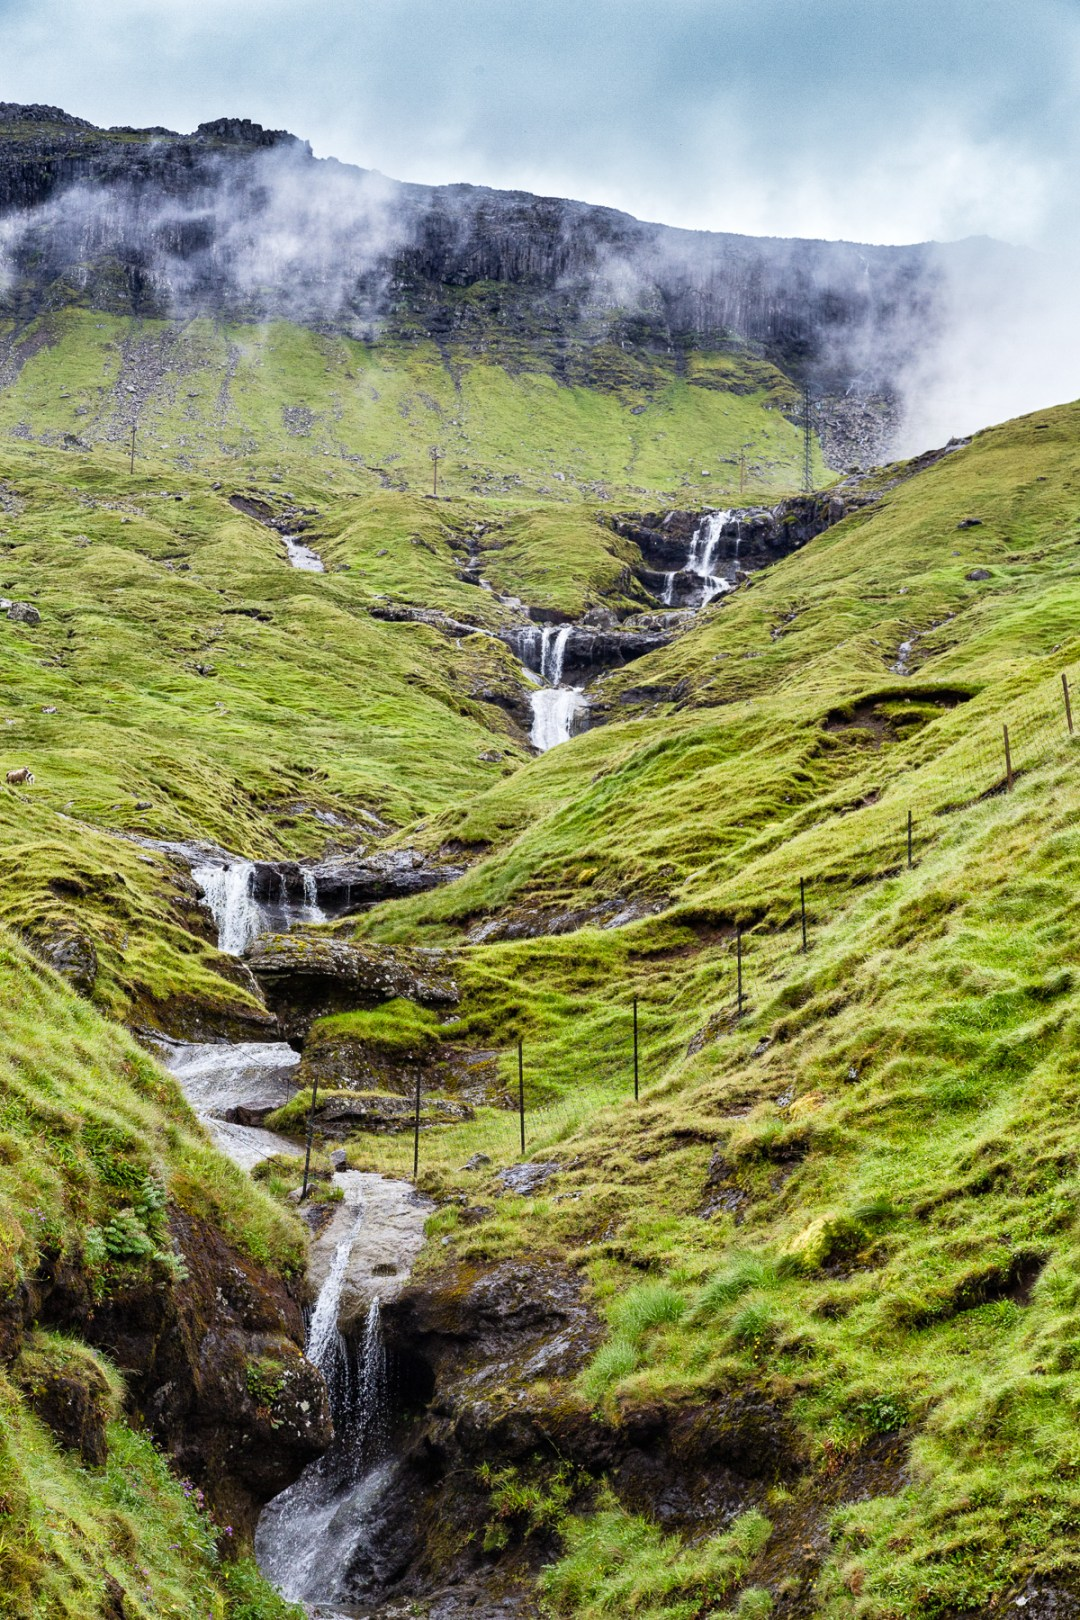 Waterfall is right before the tunnel near Kaldbaksbotnur, Faroe Islands by Jon Armstrong for Blurbomat.com.